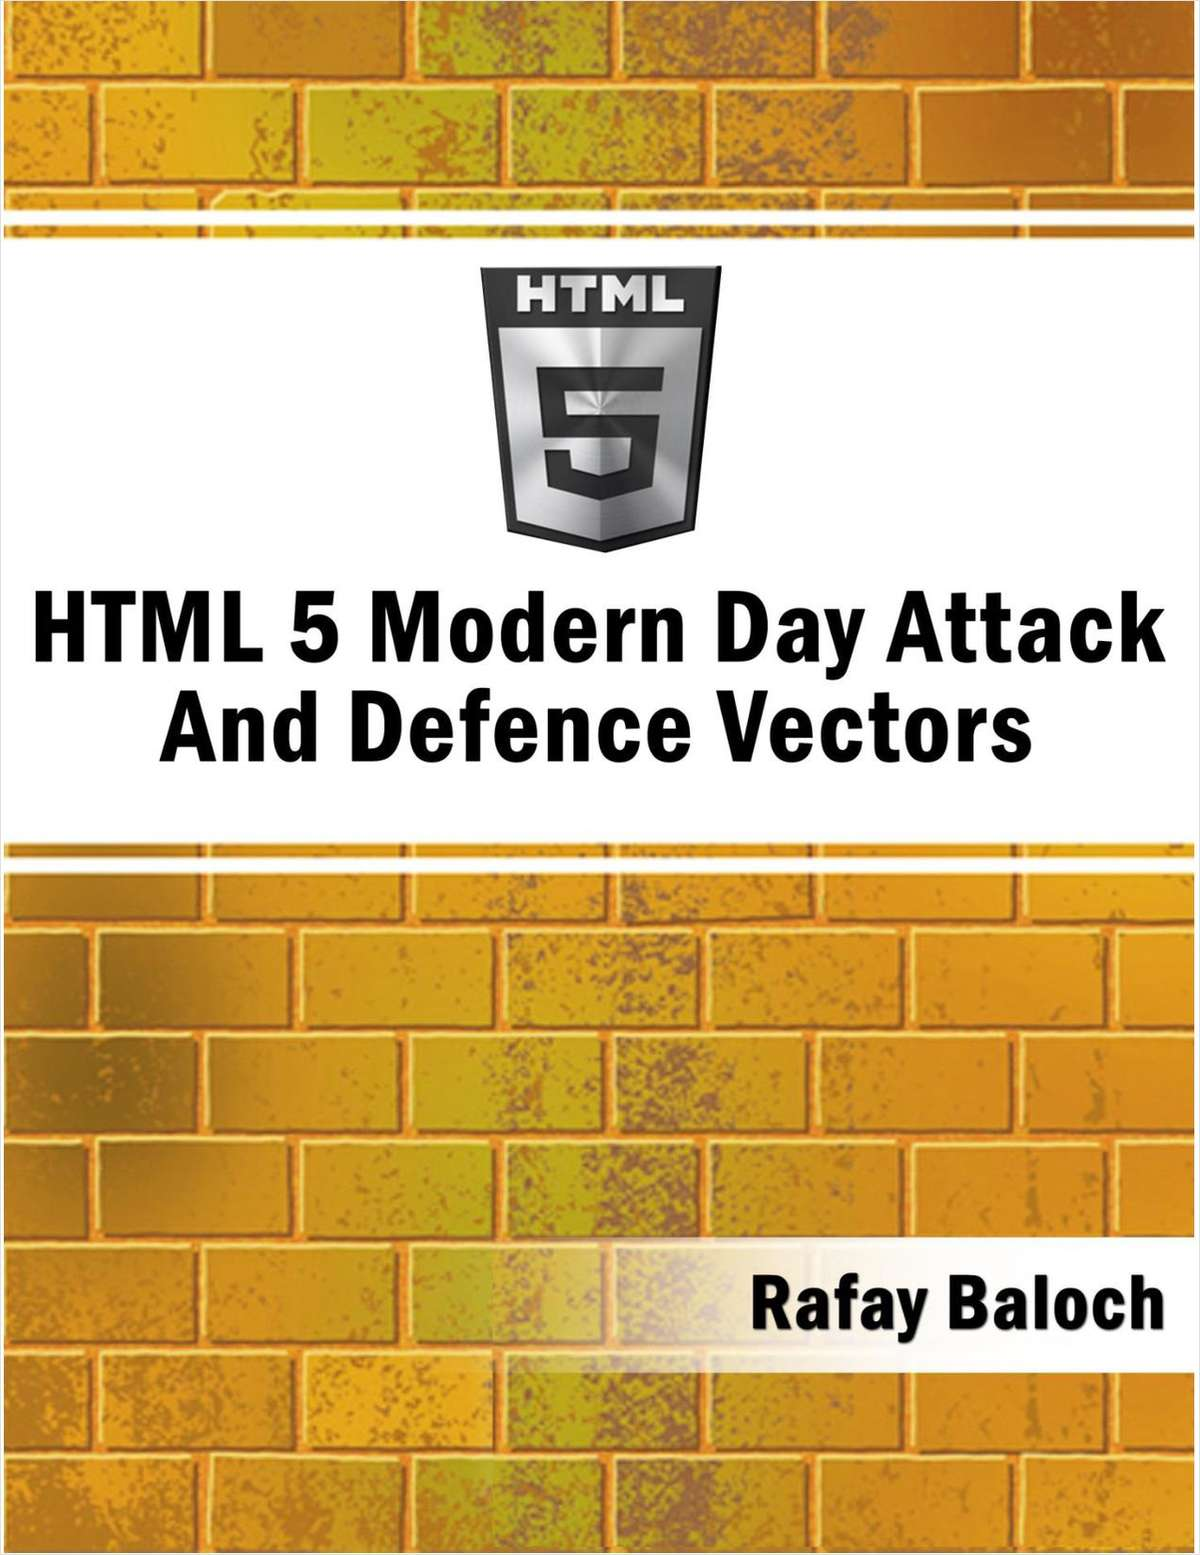 HTML 5 Modern Day Attack And Defence Vectors